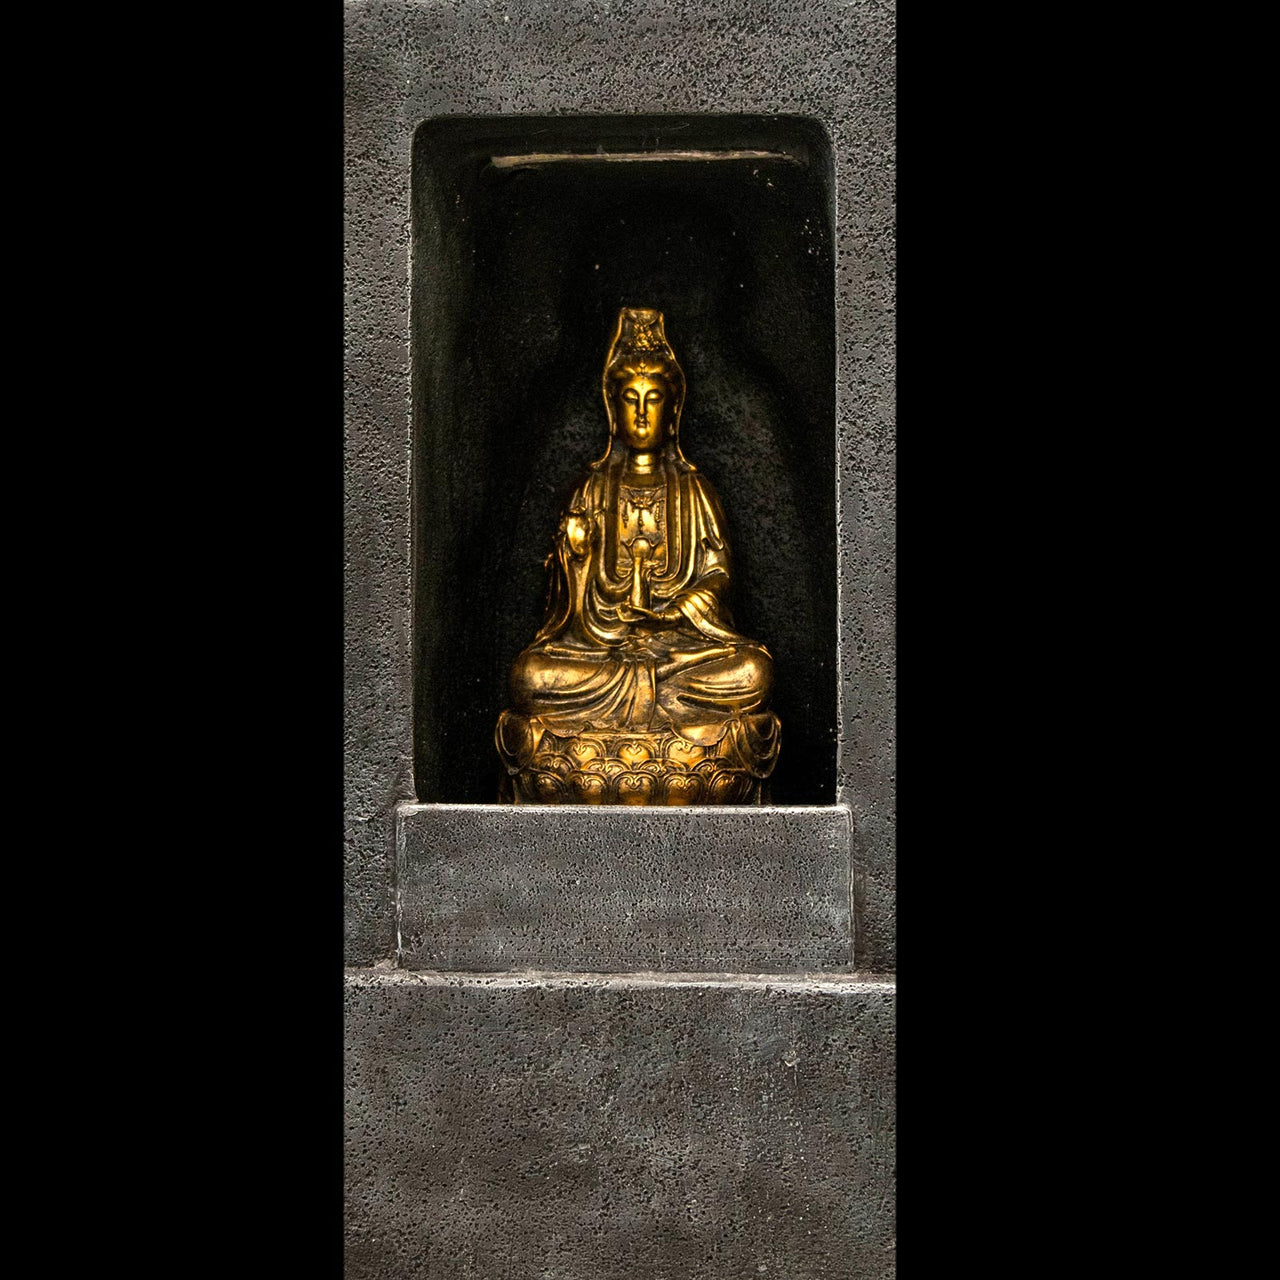 HCFT5203 - Gold Buddha in Grotto Fountain